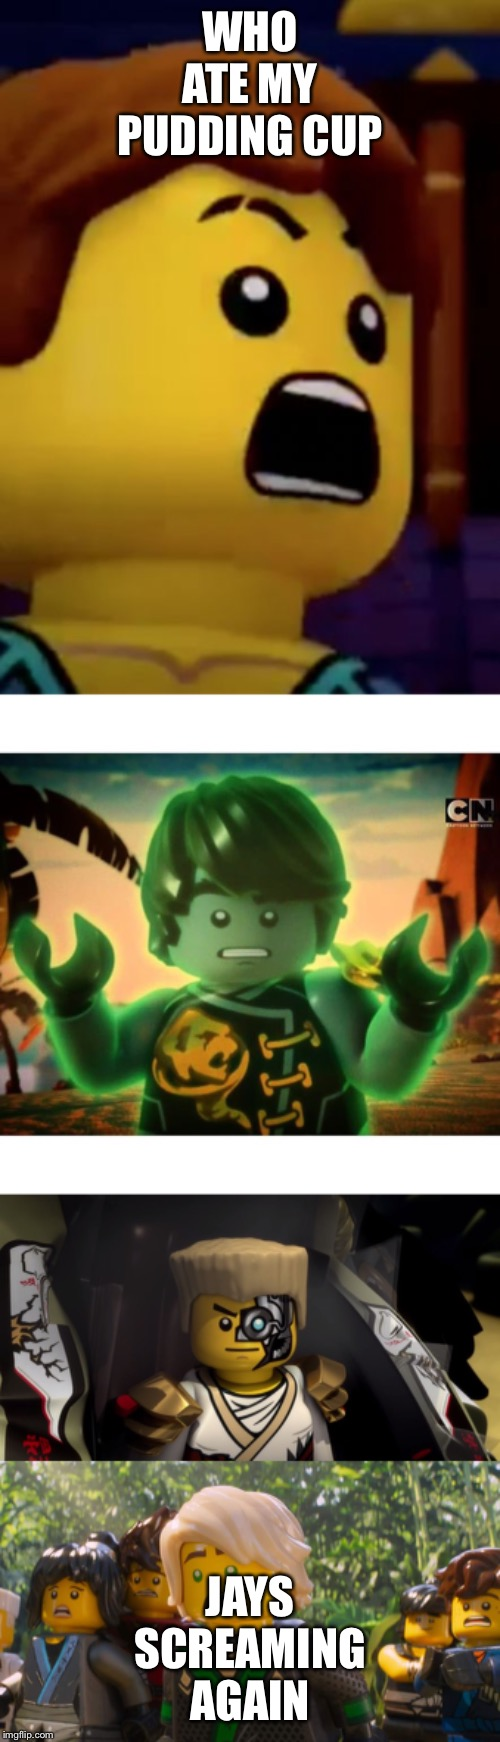 WHO ATE MY PUDDING CUP JAYS SCREAMING AGAIN | image tagged in jay- ninjago,ninjago terminator,cole ninjago season 6 2,ninjago shocked | made w/ Imgflip meme maker